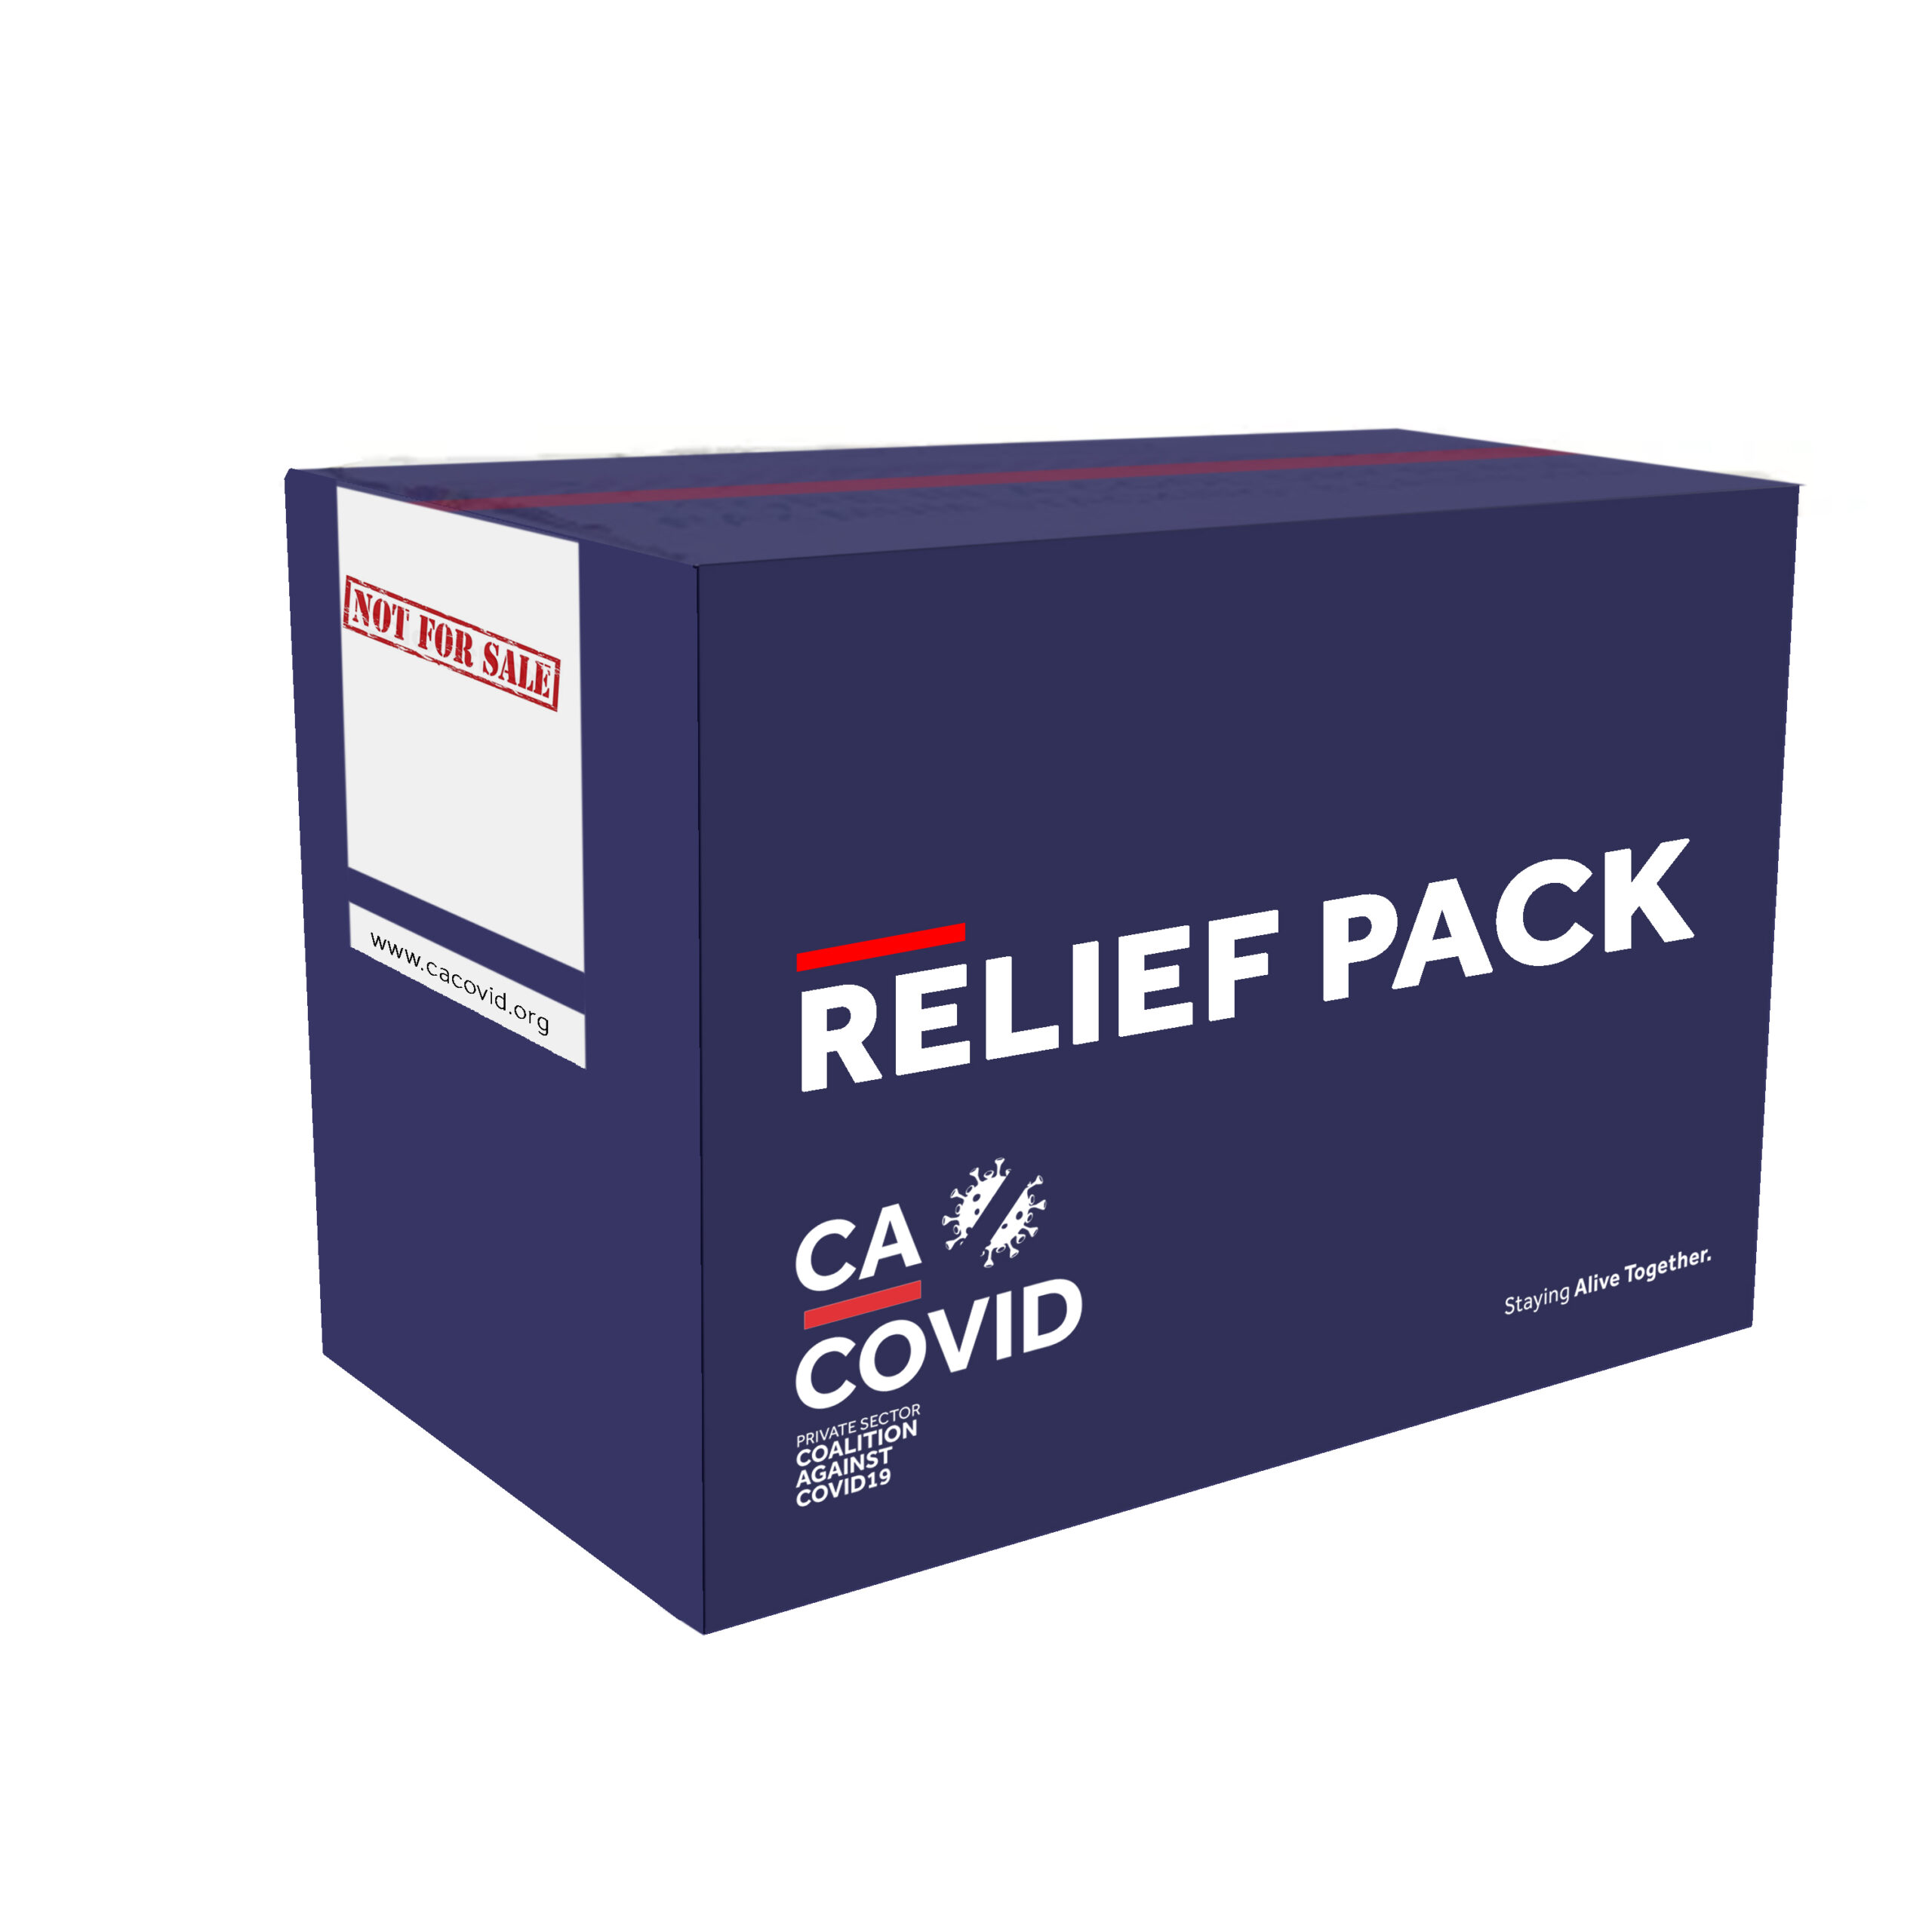 CACOVID PACKAGING RELIEF PACK